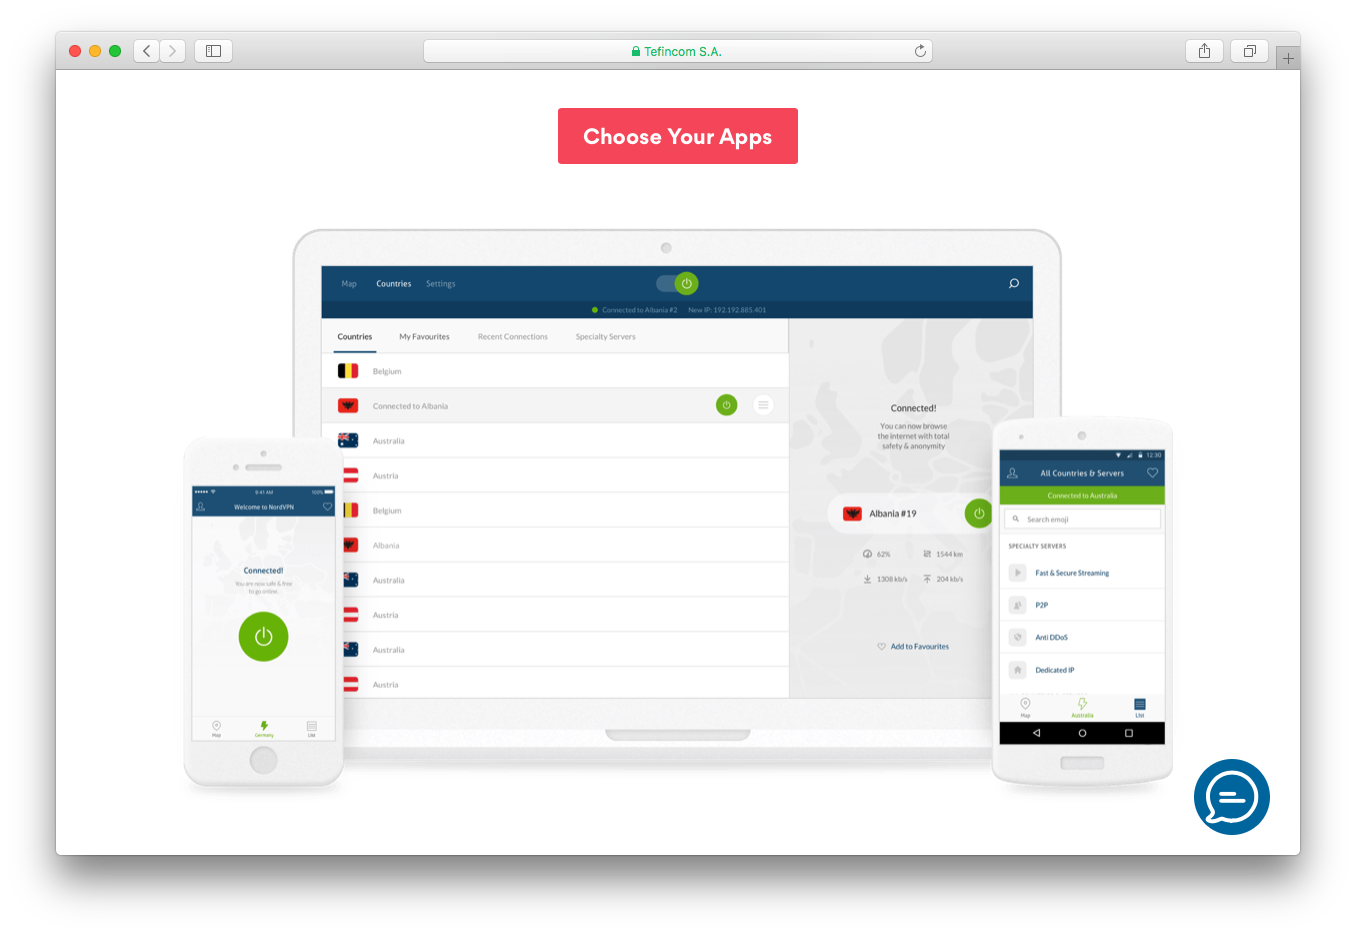 NordVPN protect 6 devices simultaneously mobile apps android iOS macOS windows